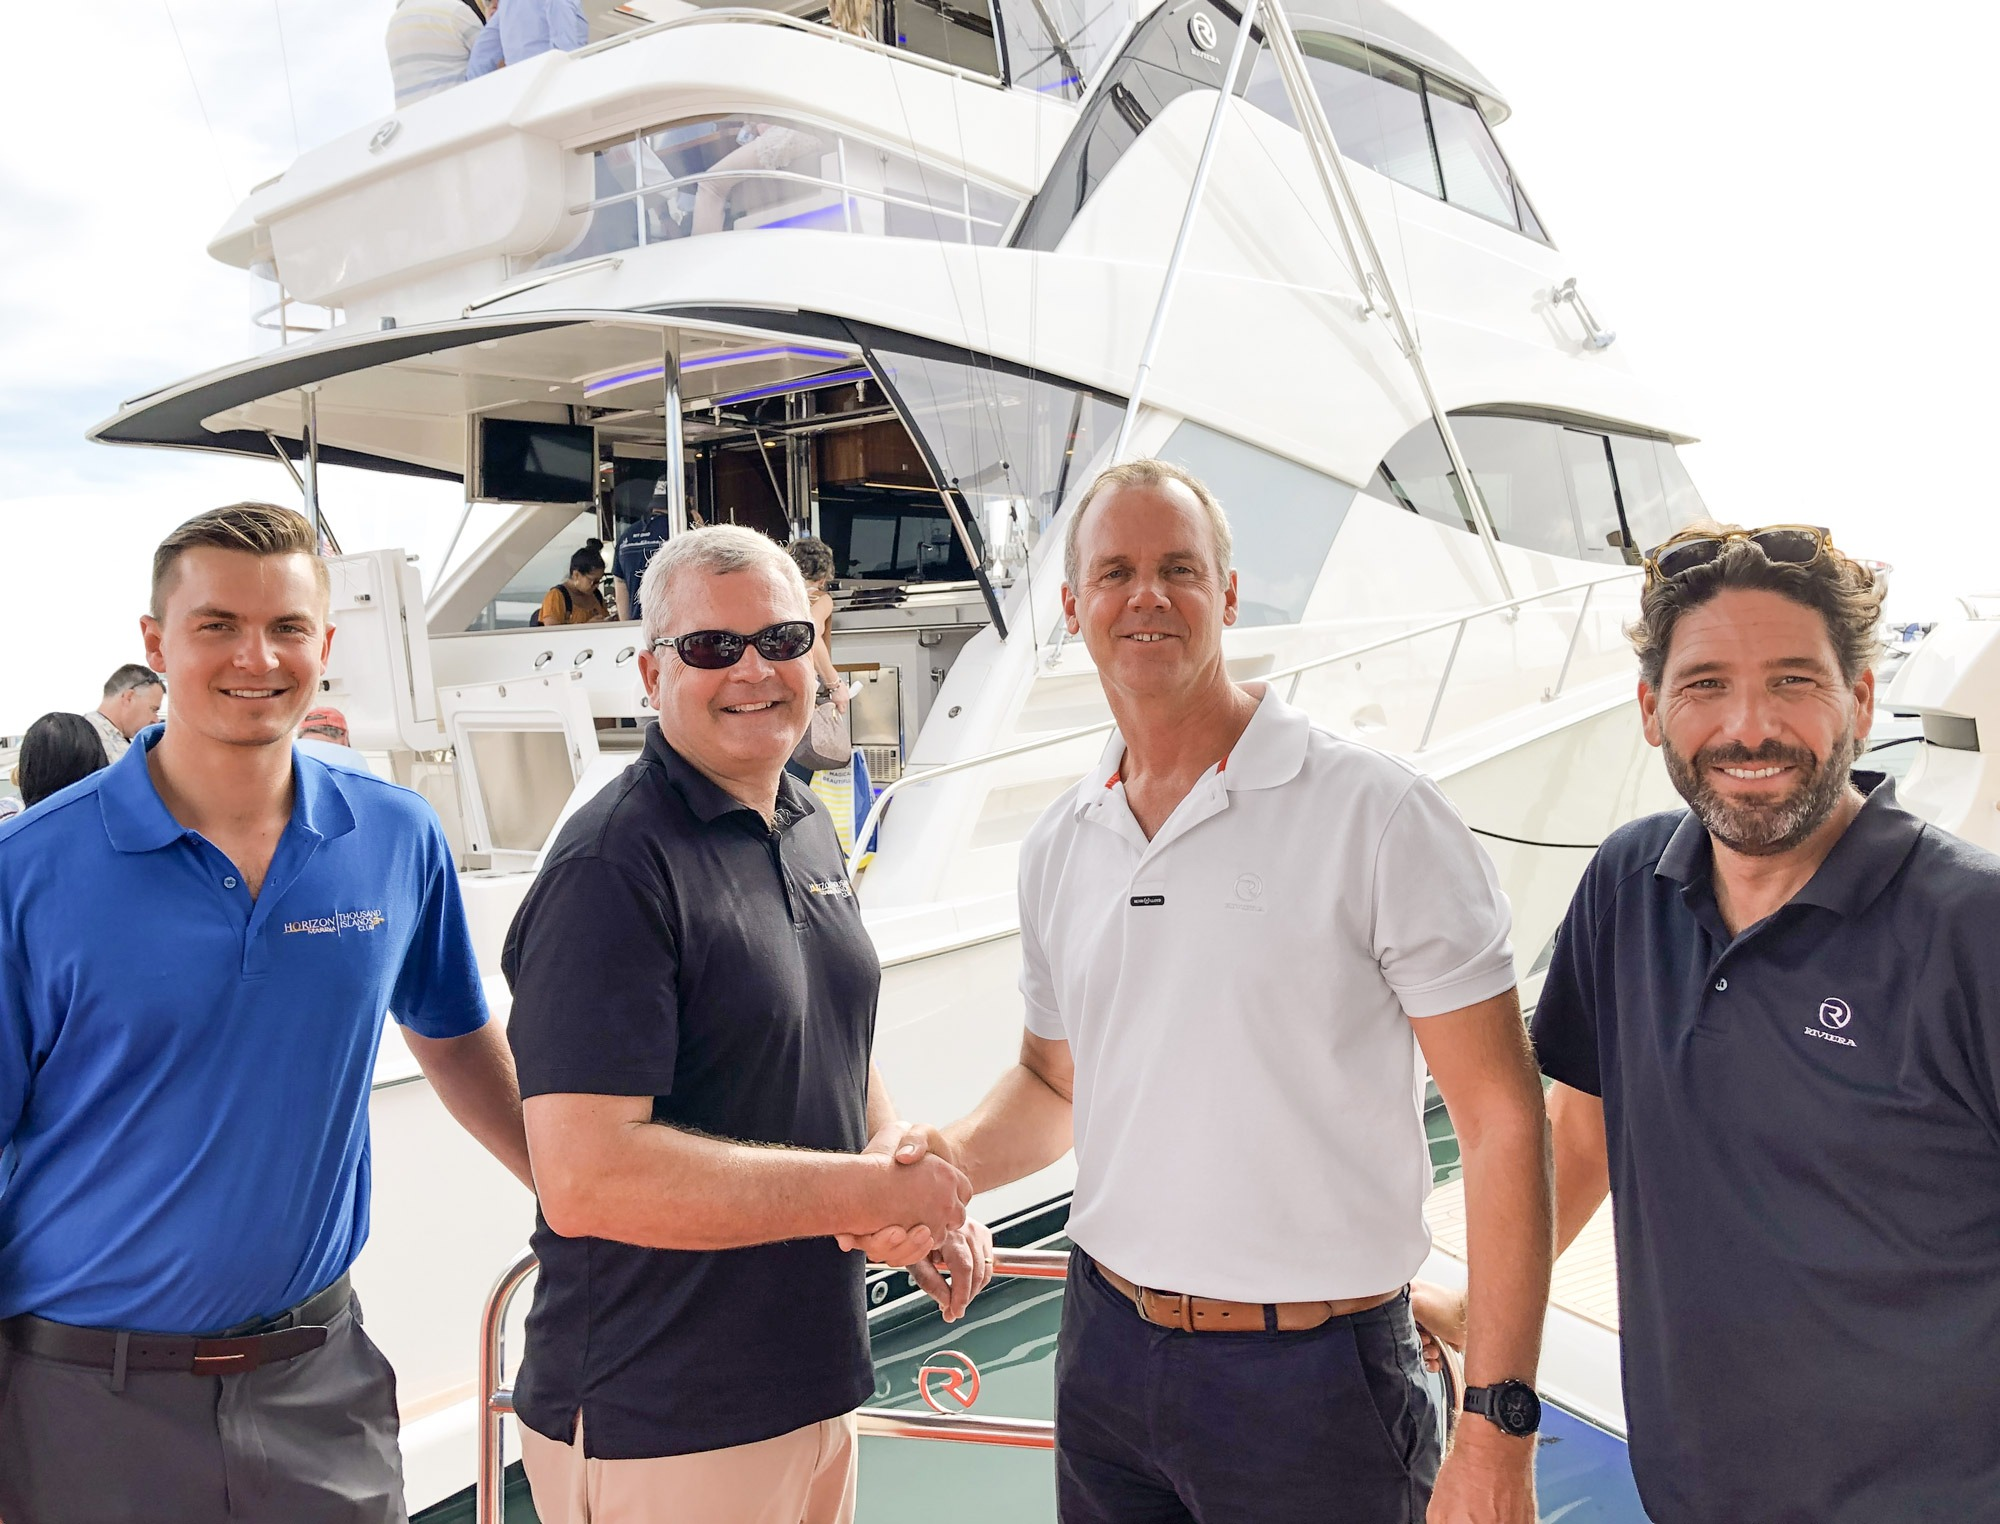 Grahame Chavoustie and Michael Chavoustie from Horizon Marina with Riviera Chairman Rodney Longhurst and Riviera International Sales Director, Chris McCafferty.